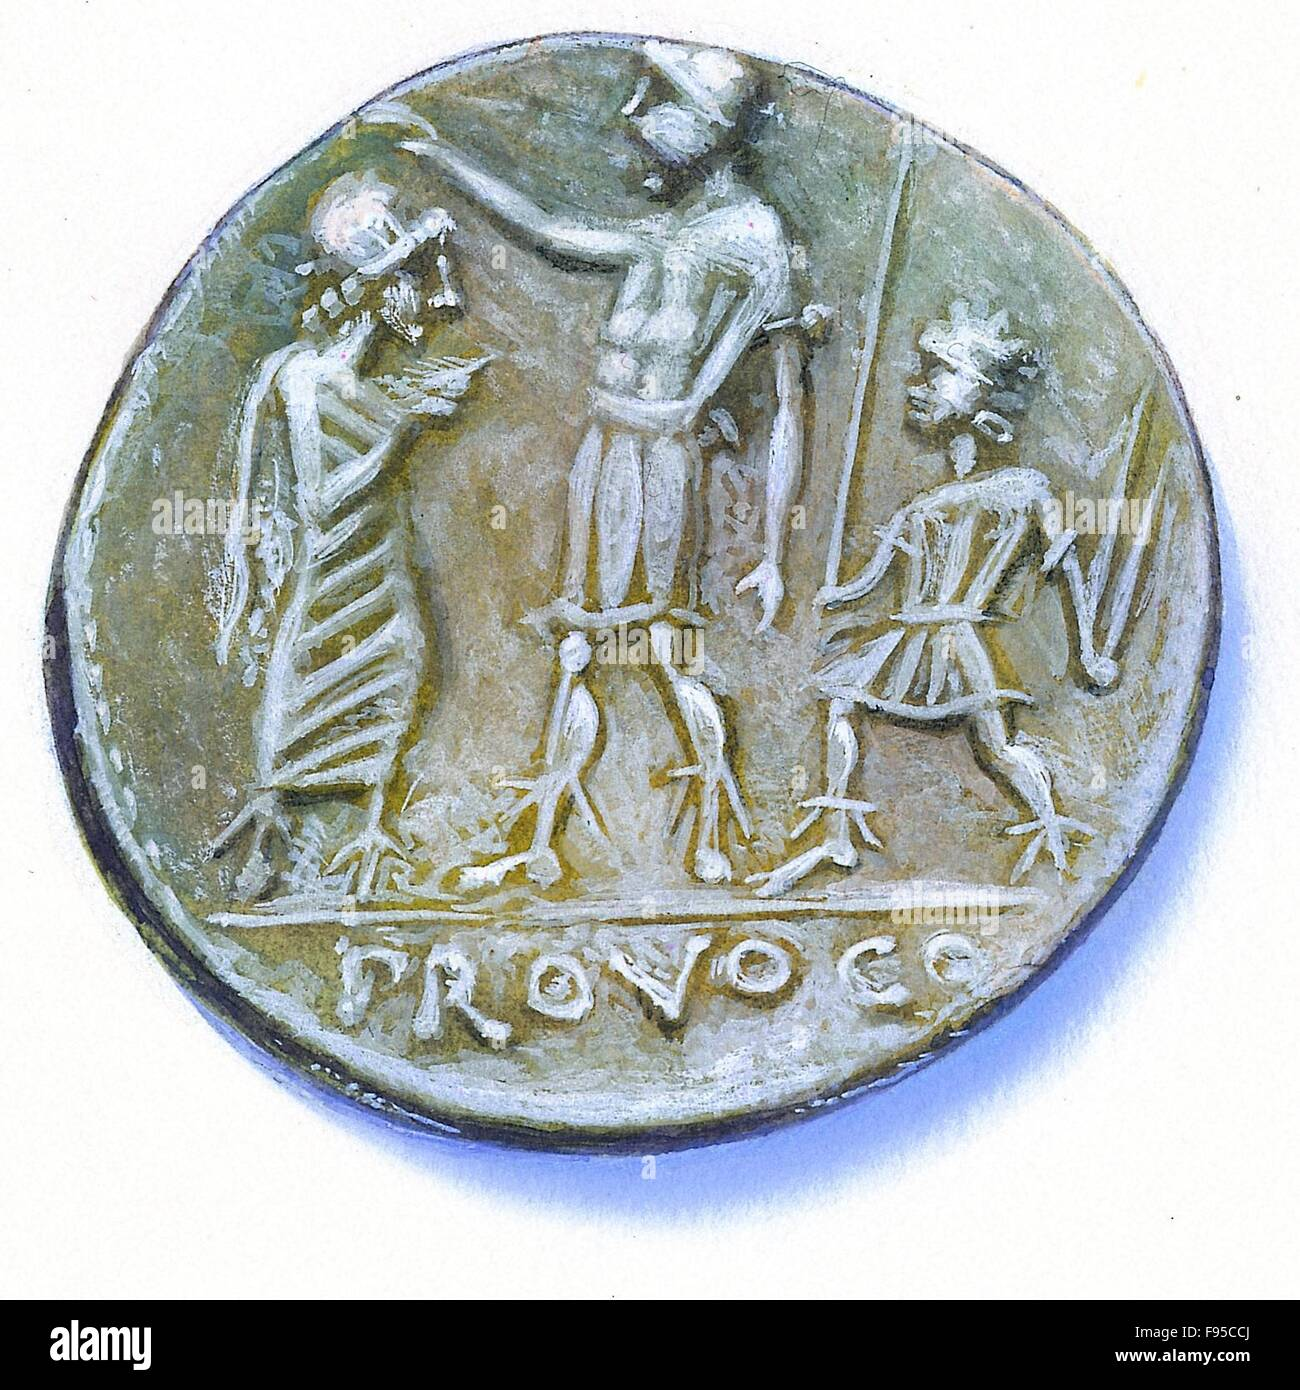 Coin of the 2nd century BC. - Stock Image